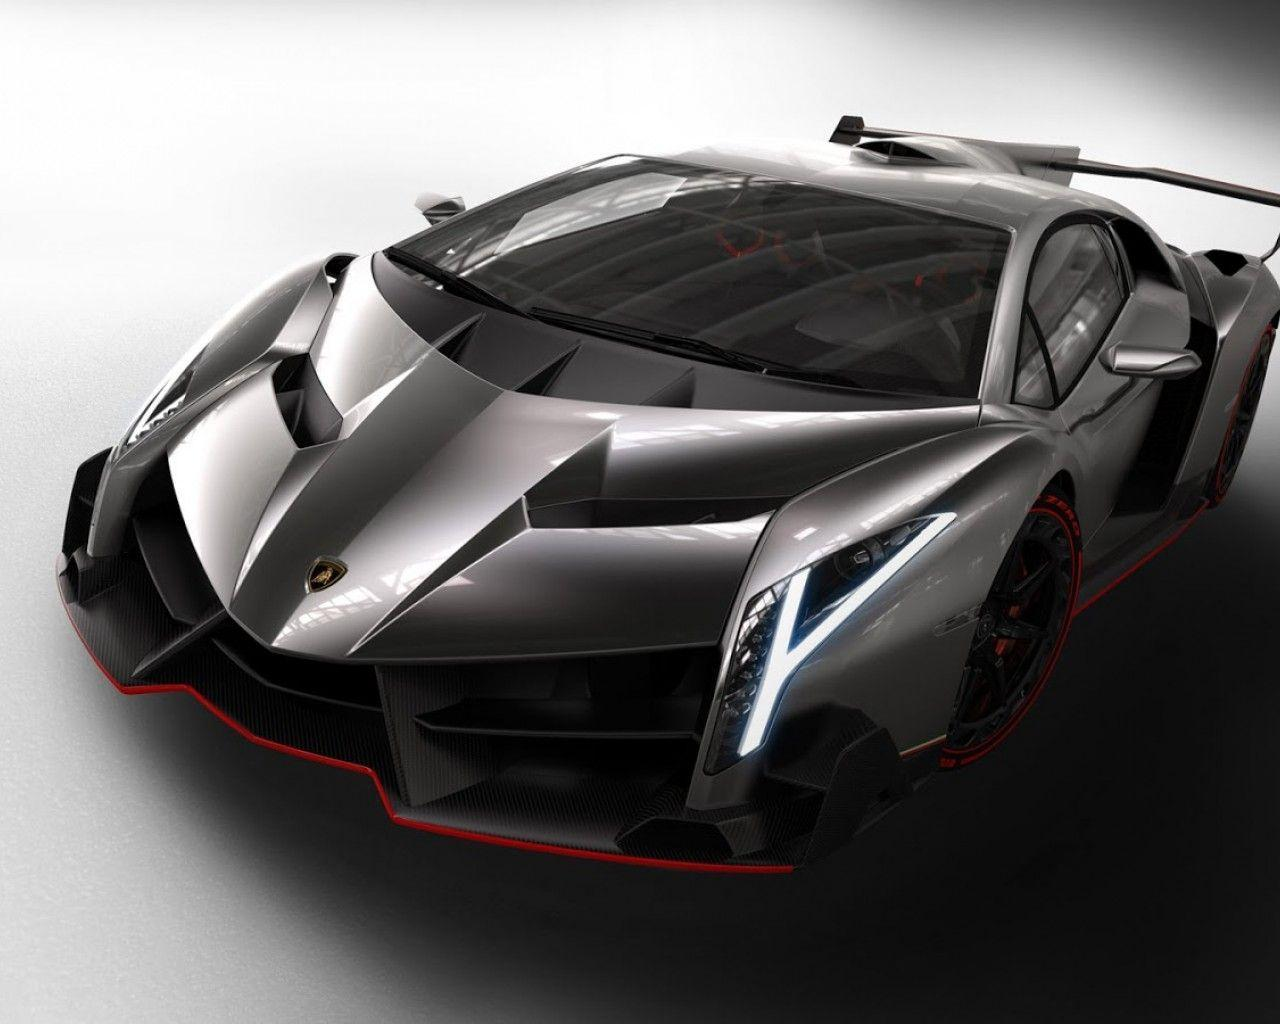 Fastest Car In The World 2015 >> 100 Ideas The Faster Car In The World On Chuncloth Com